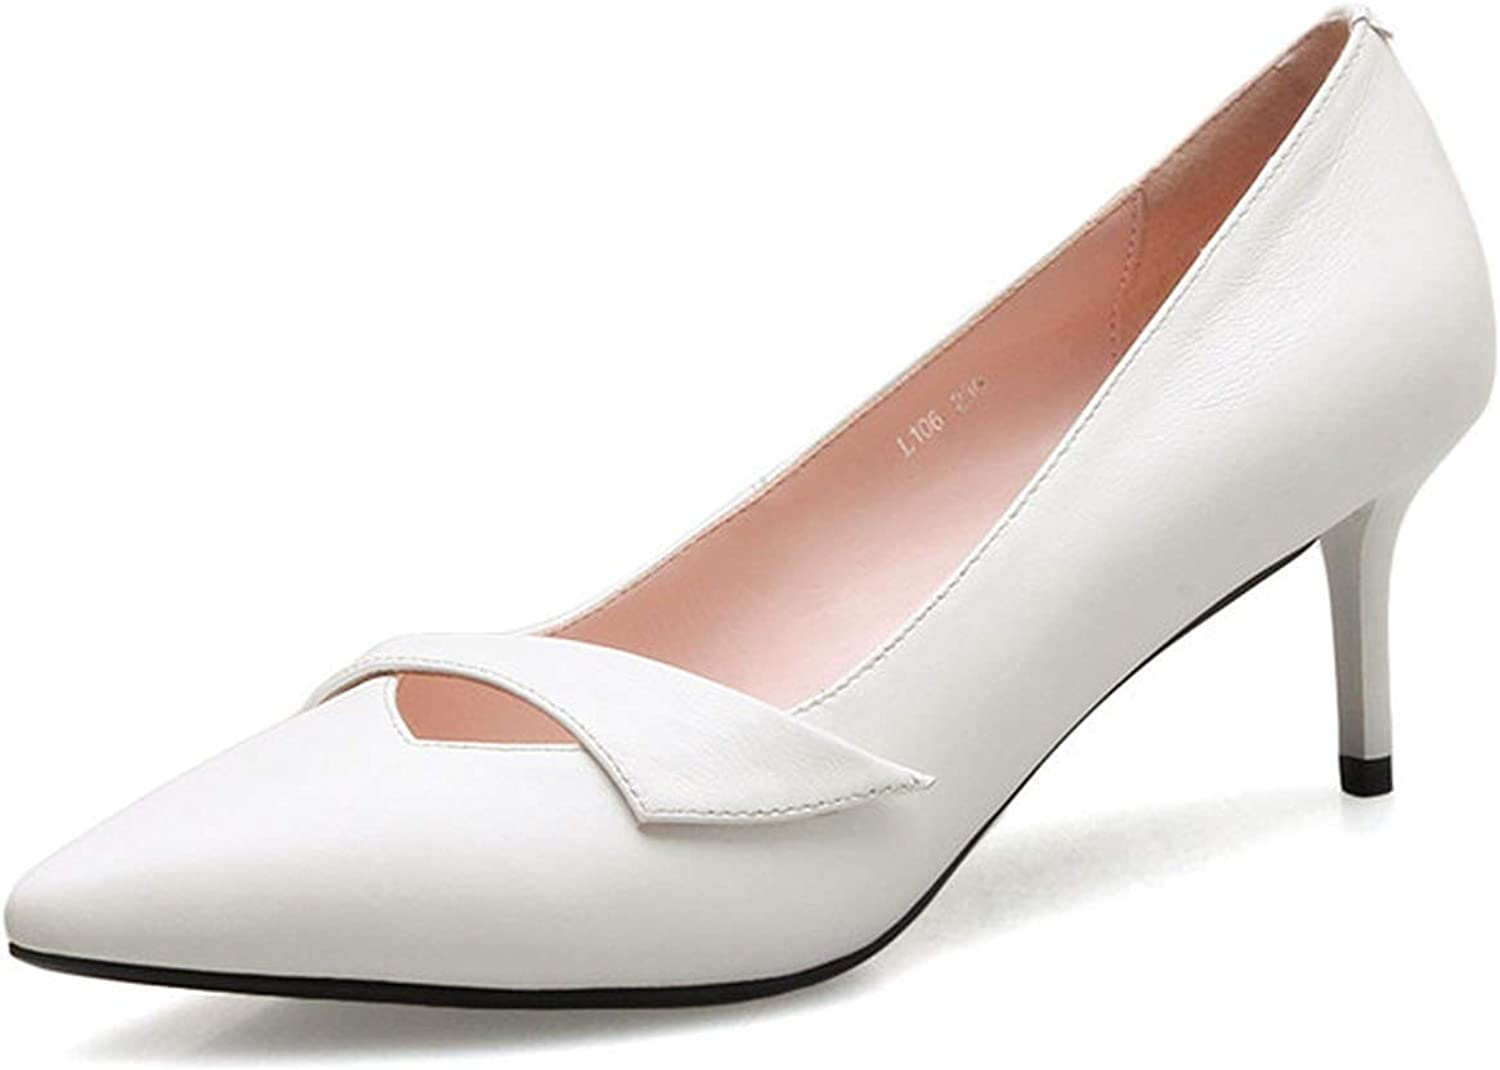 FINDYOU Sexy High Heels Dress Pumps Genuine Leather shoes Women Pointed Toe Wedding Thin Heels